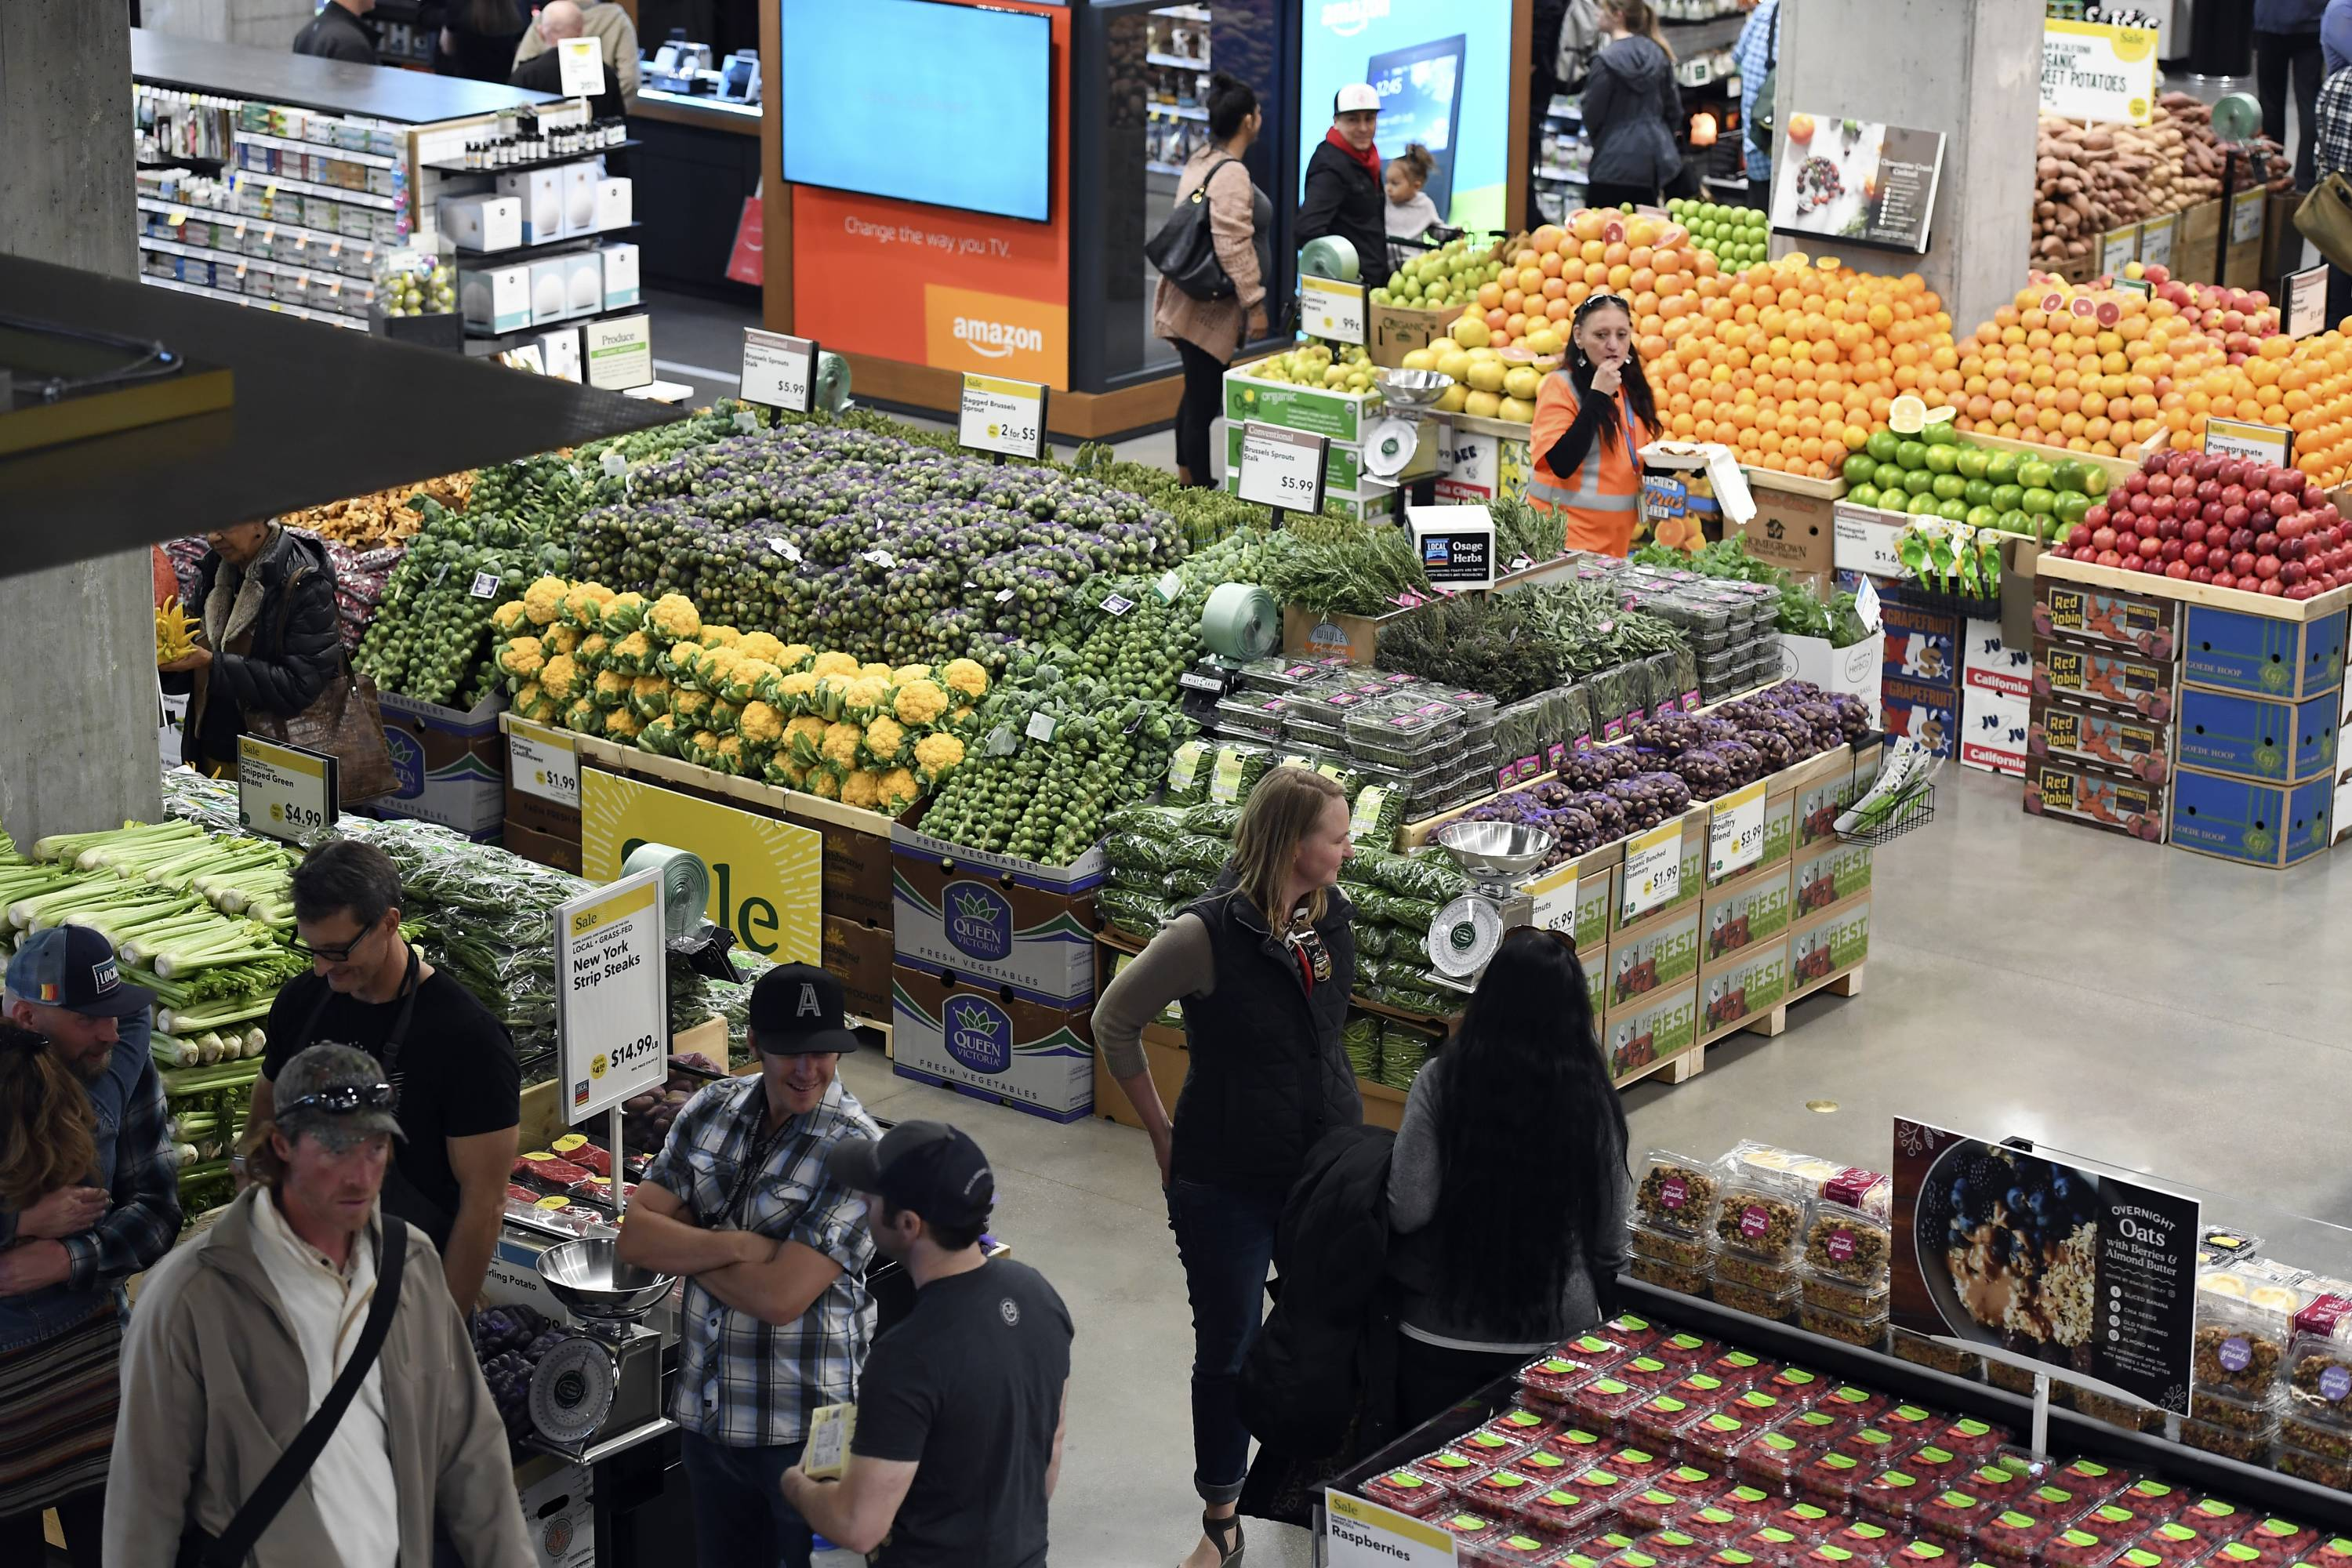 Whole Foods on Union Station welcomed its first official shoppers